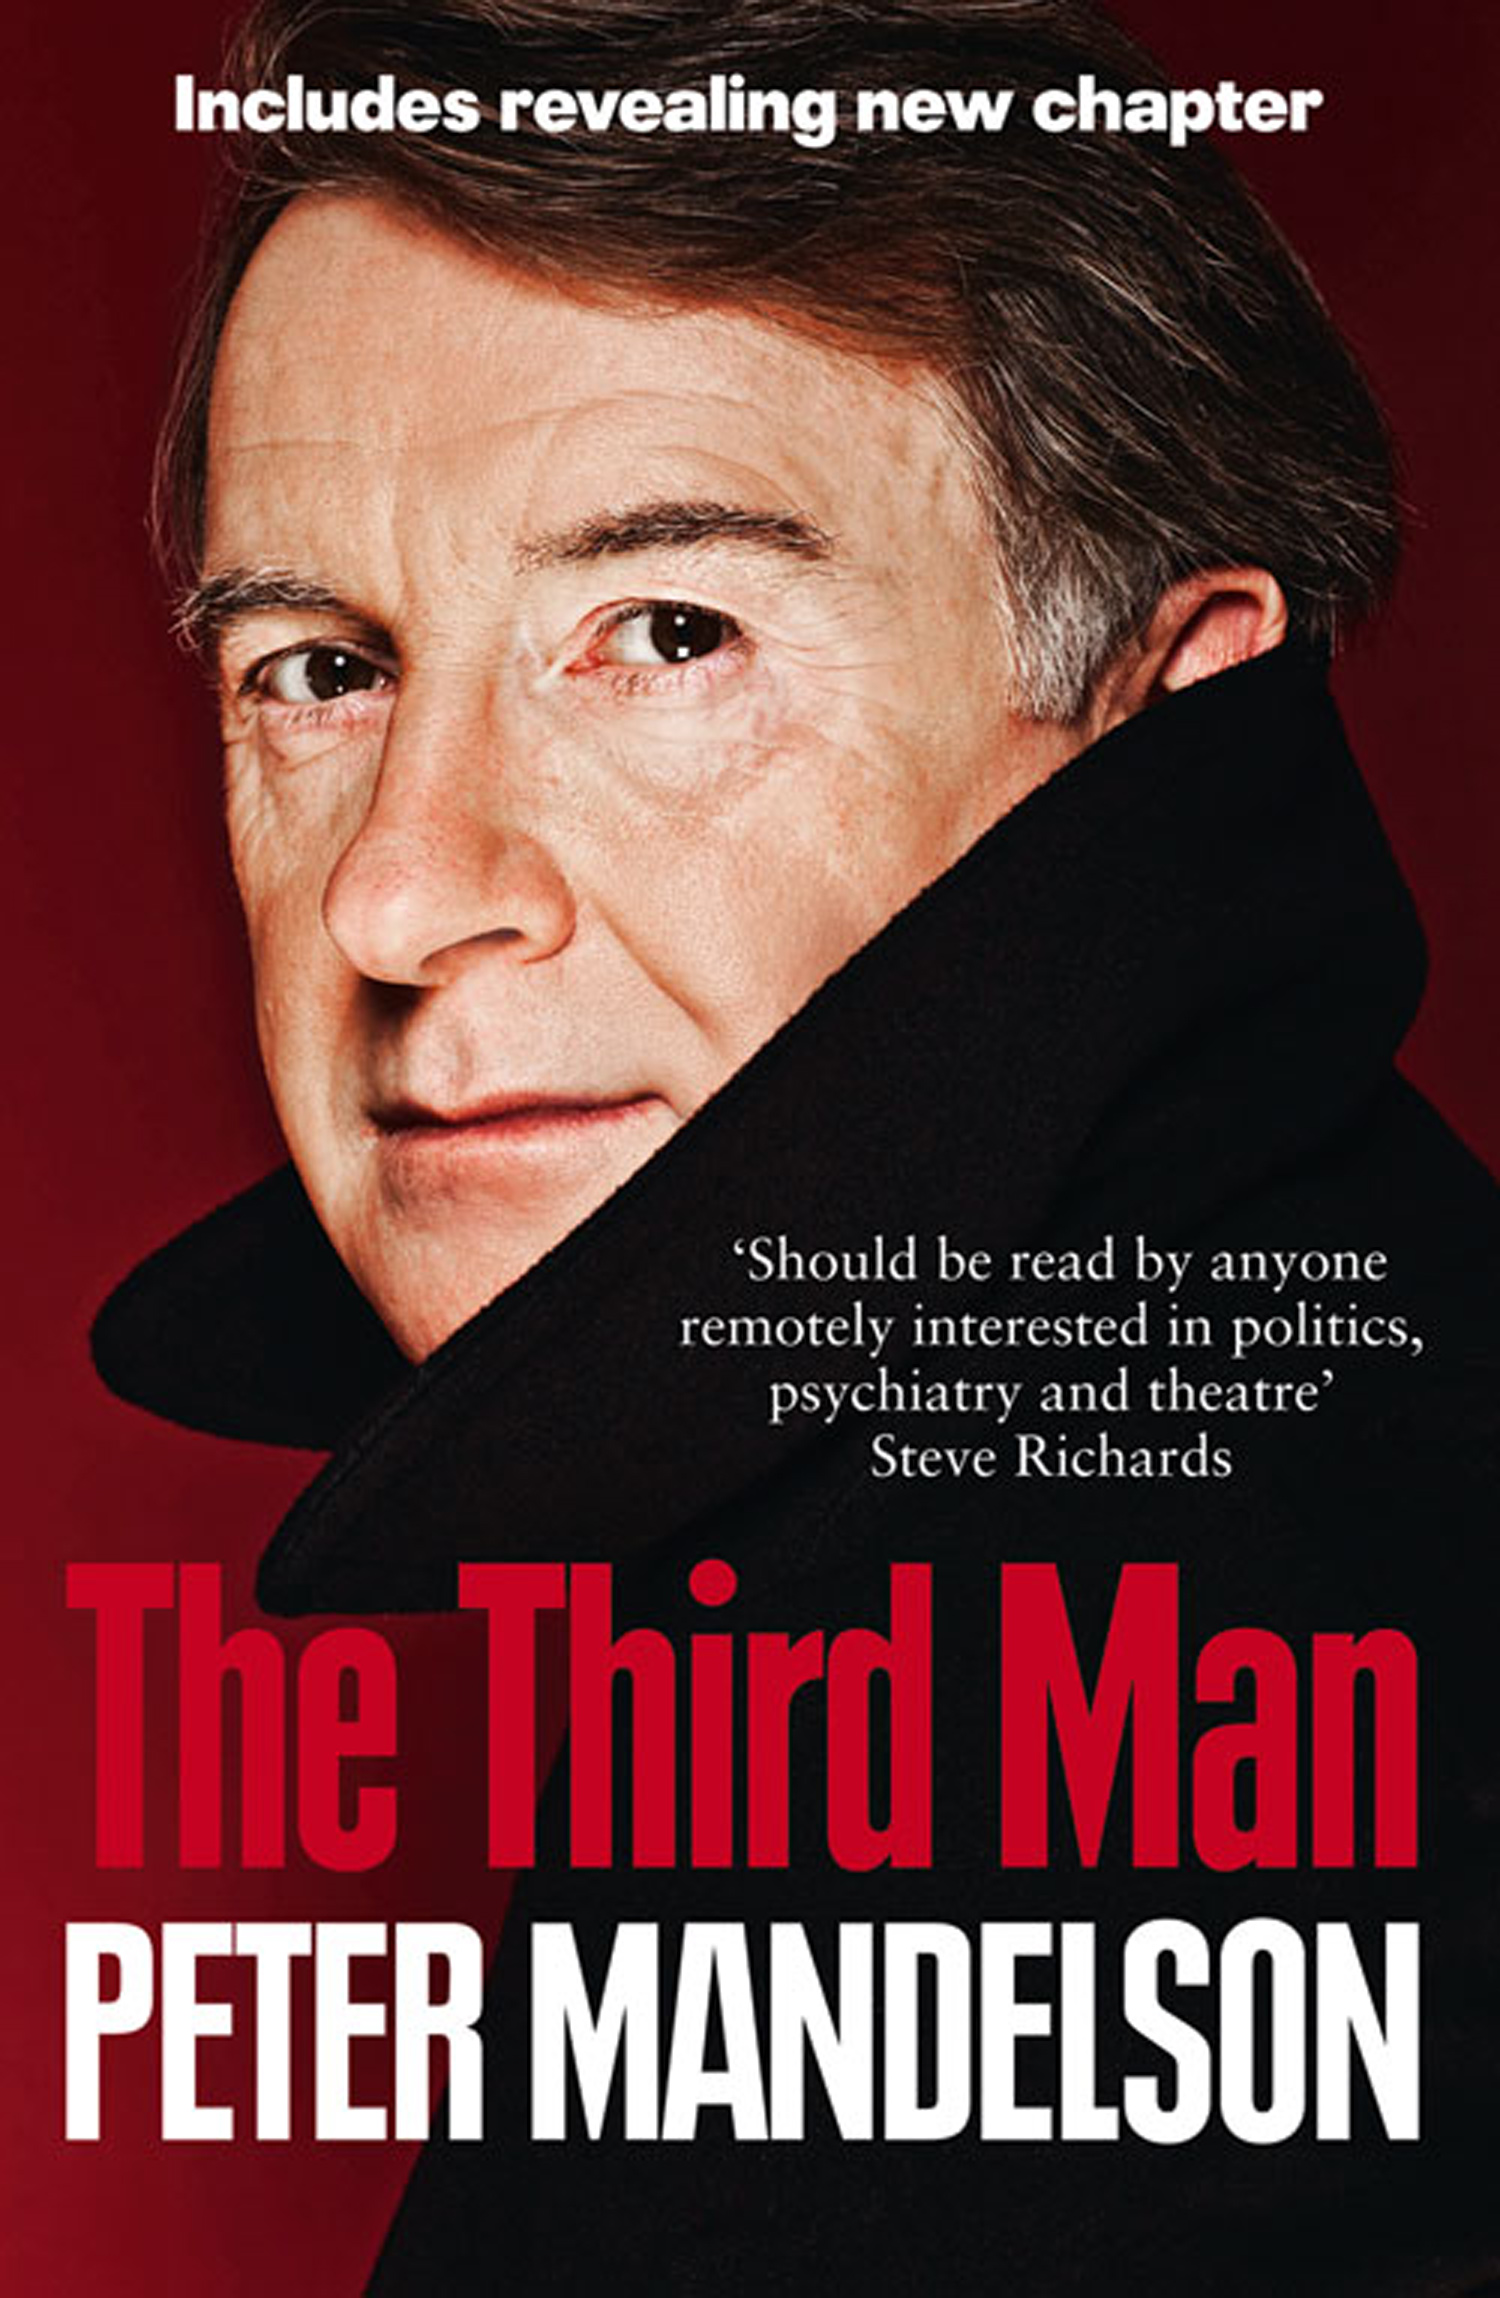 The Third Man: Life at the Heart of New Labour